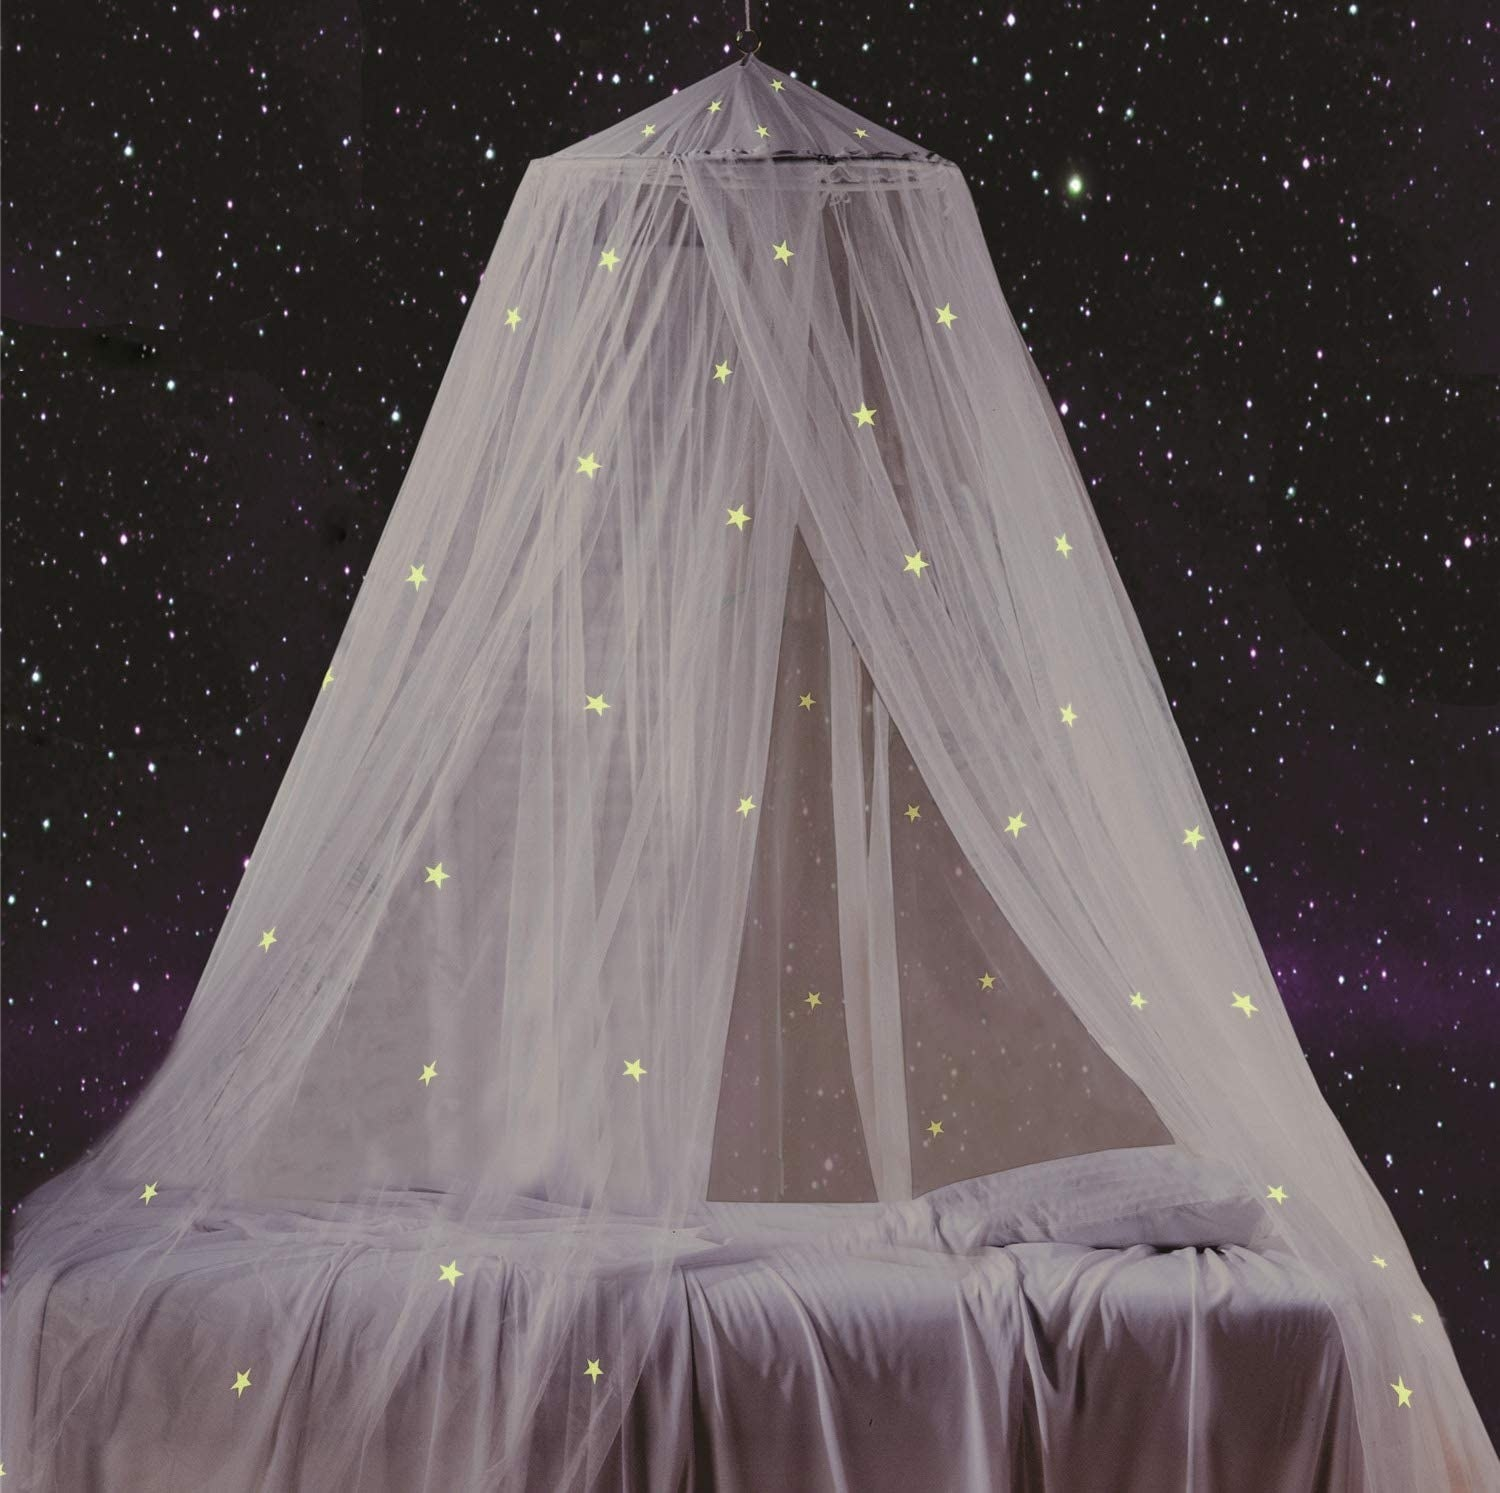 A mesh bed canopy hanging overtop of a bed